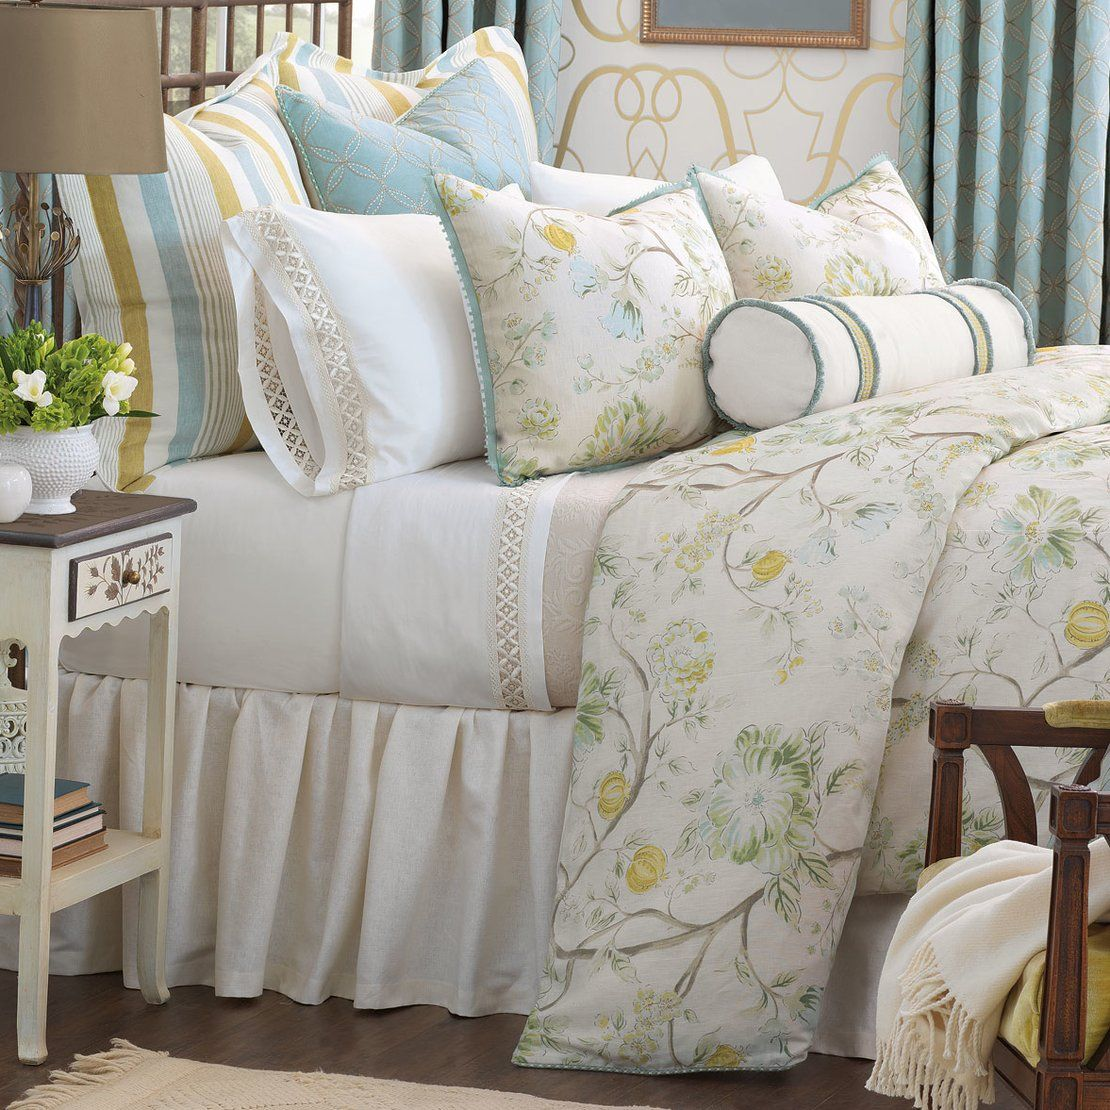 Eastern Accents Amal Abstract Cotton Blend 7 Piece Duvet Cover Set Luxury Bedding Bedding Sets Comforter Sets